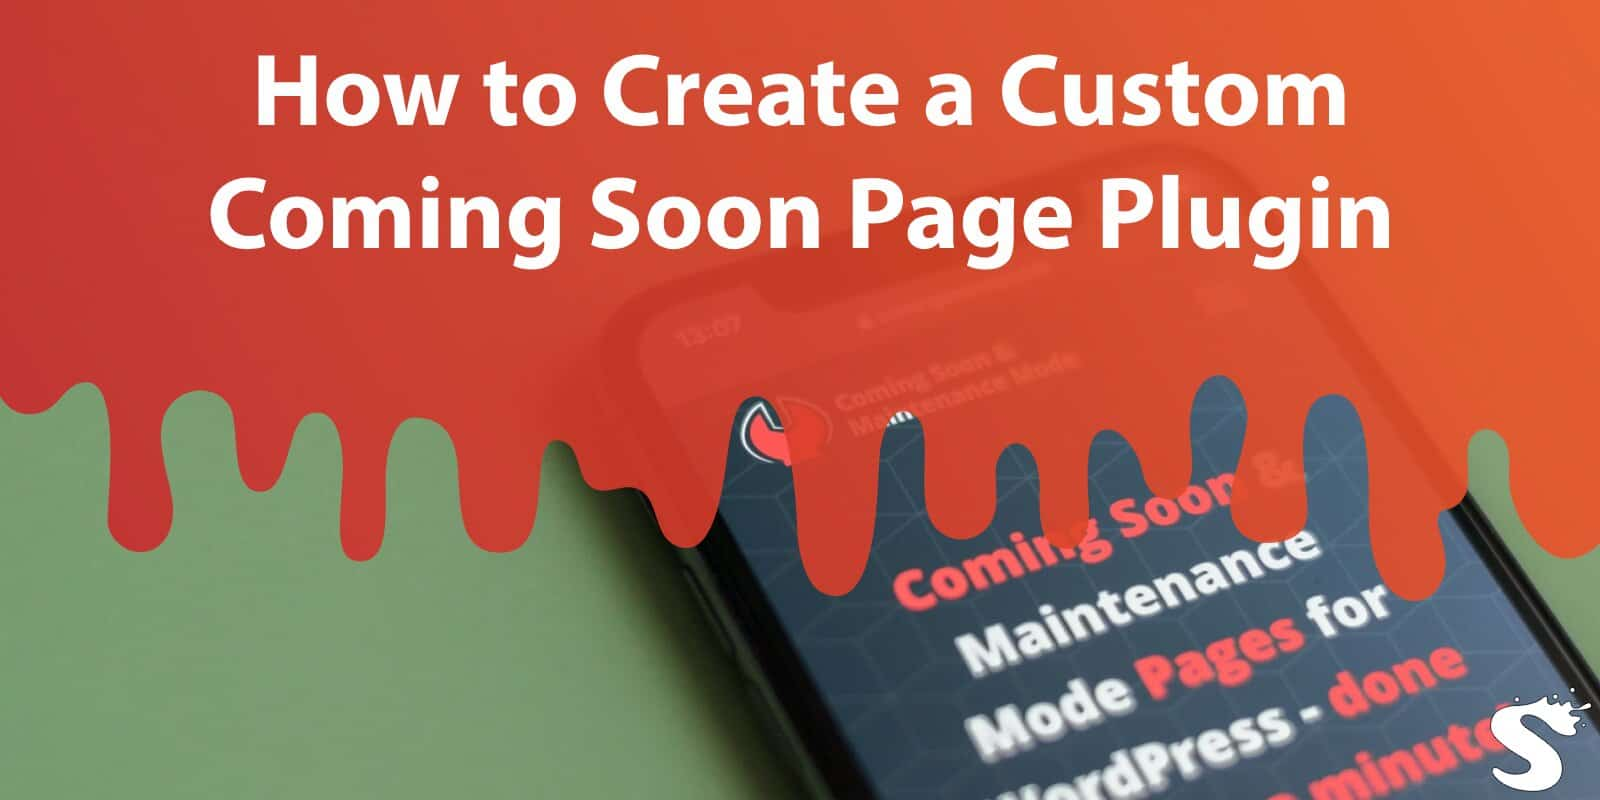 How to Create a Custom Coming Soon Page Plugin